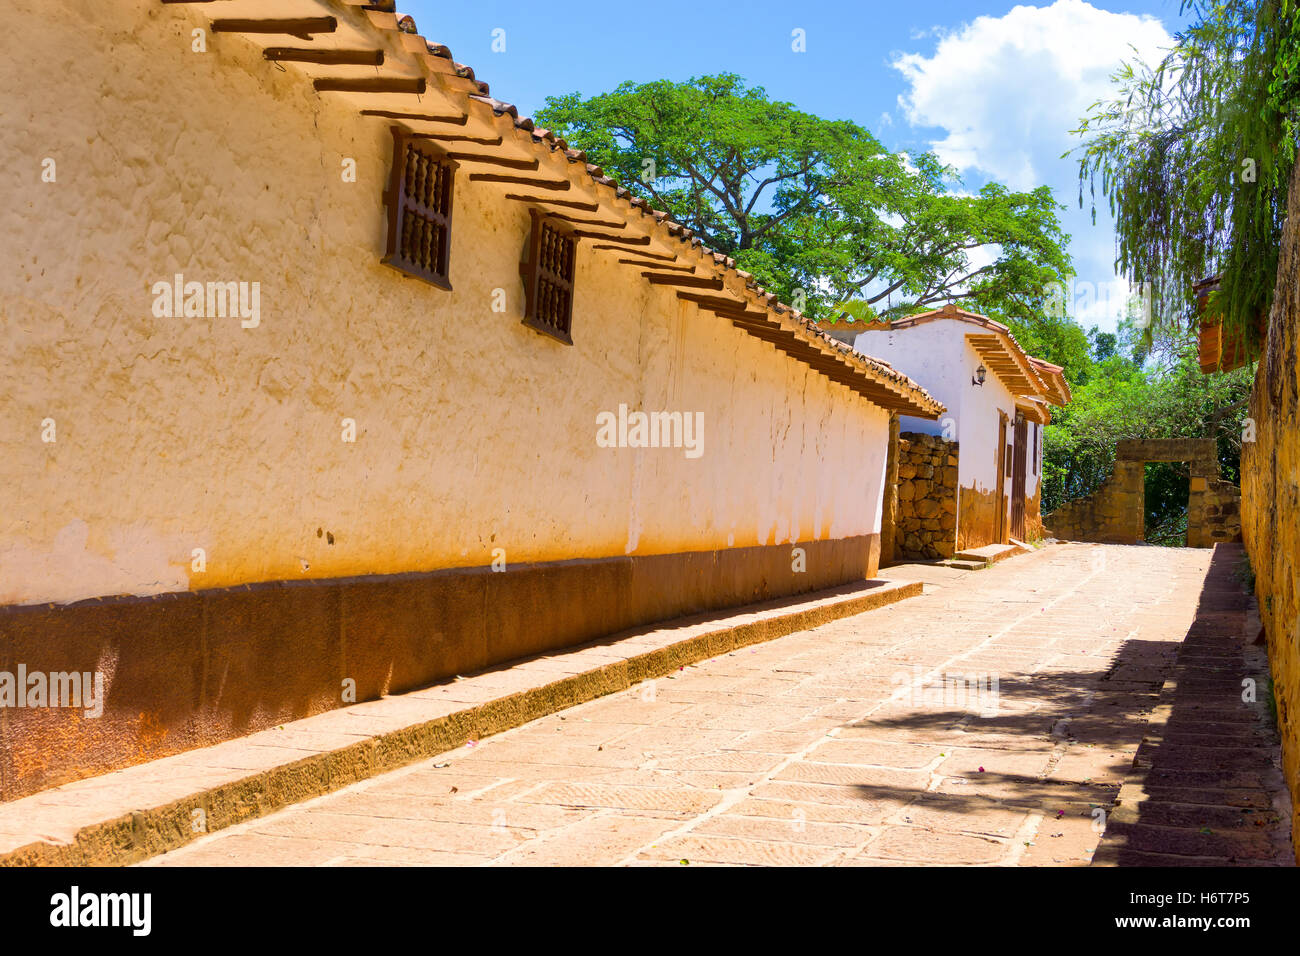 View of a sandstone street in beautiful colonial Barichara, Colombia Stock Photo